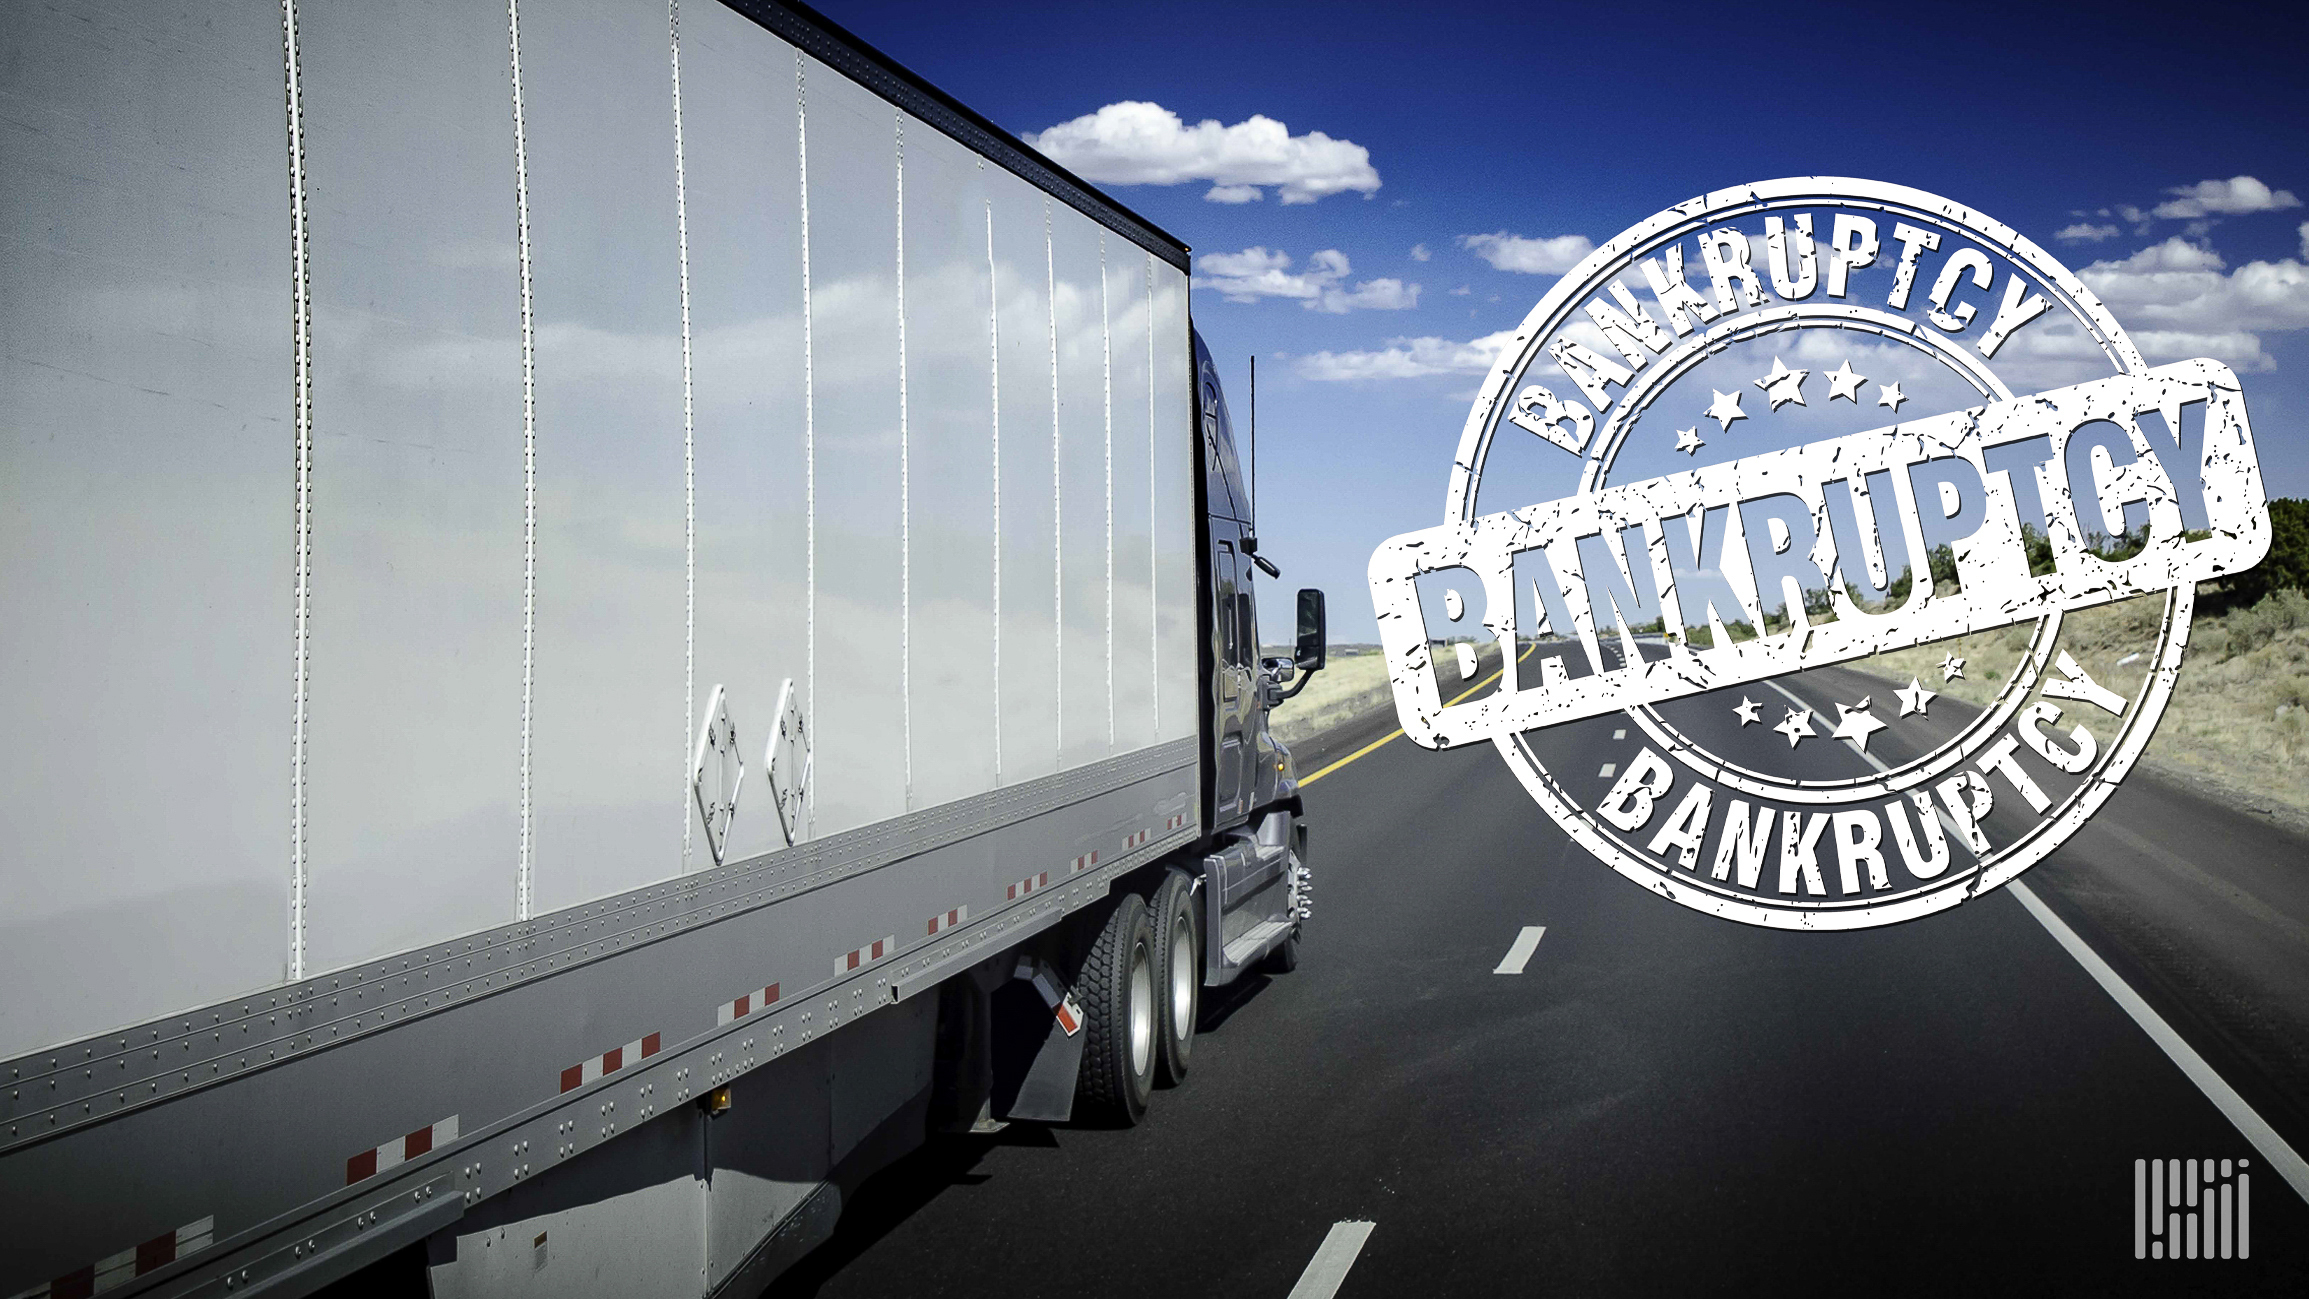 Trucking lender Instapay files for Chapter 11 bankruptcy protection